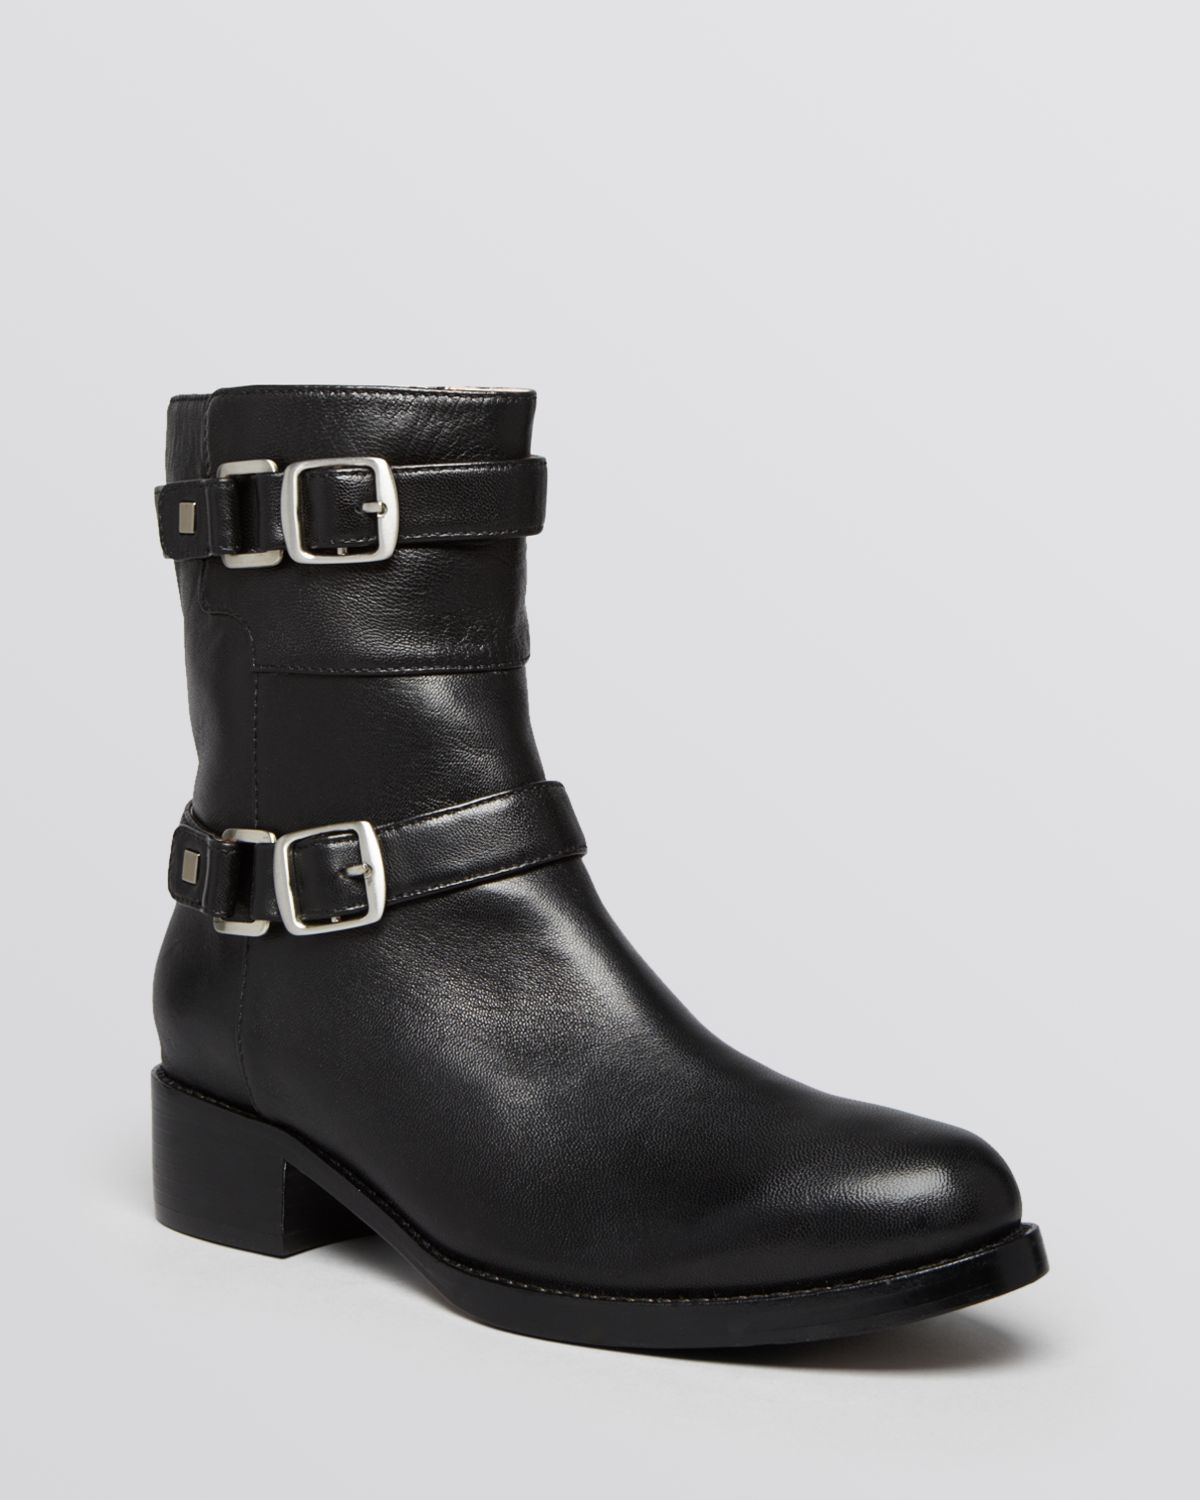 Taryn Rose Boots - Sammie in Black Leather (Black)